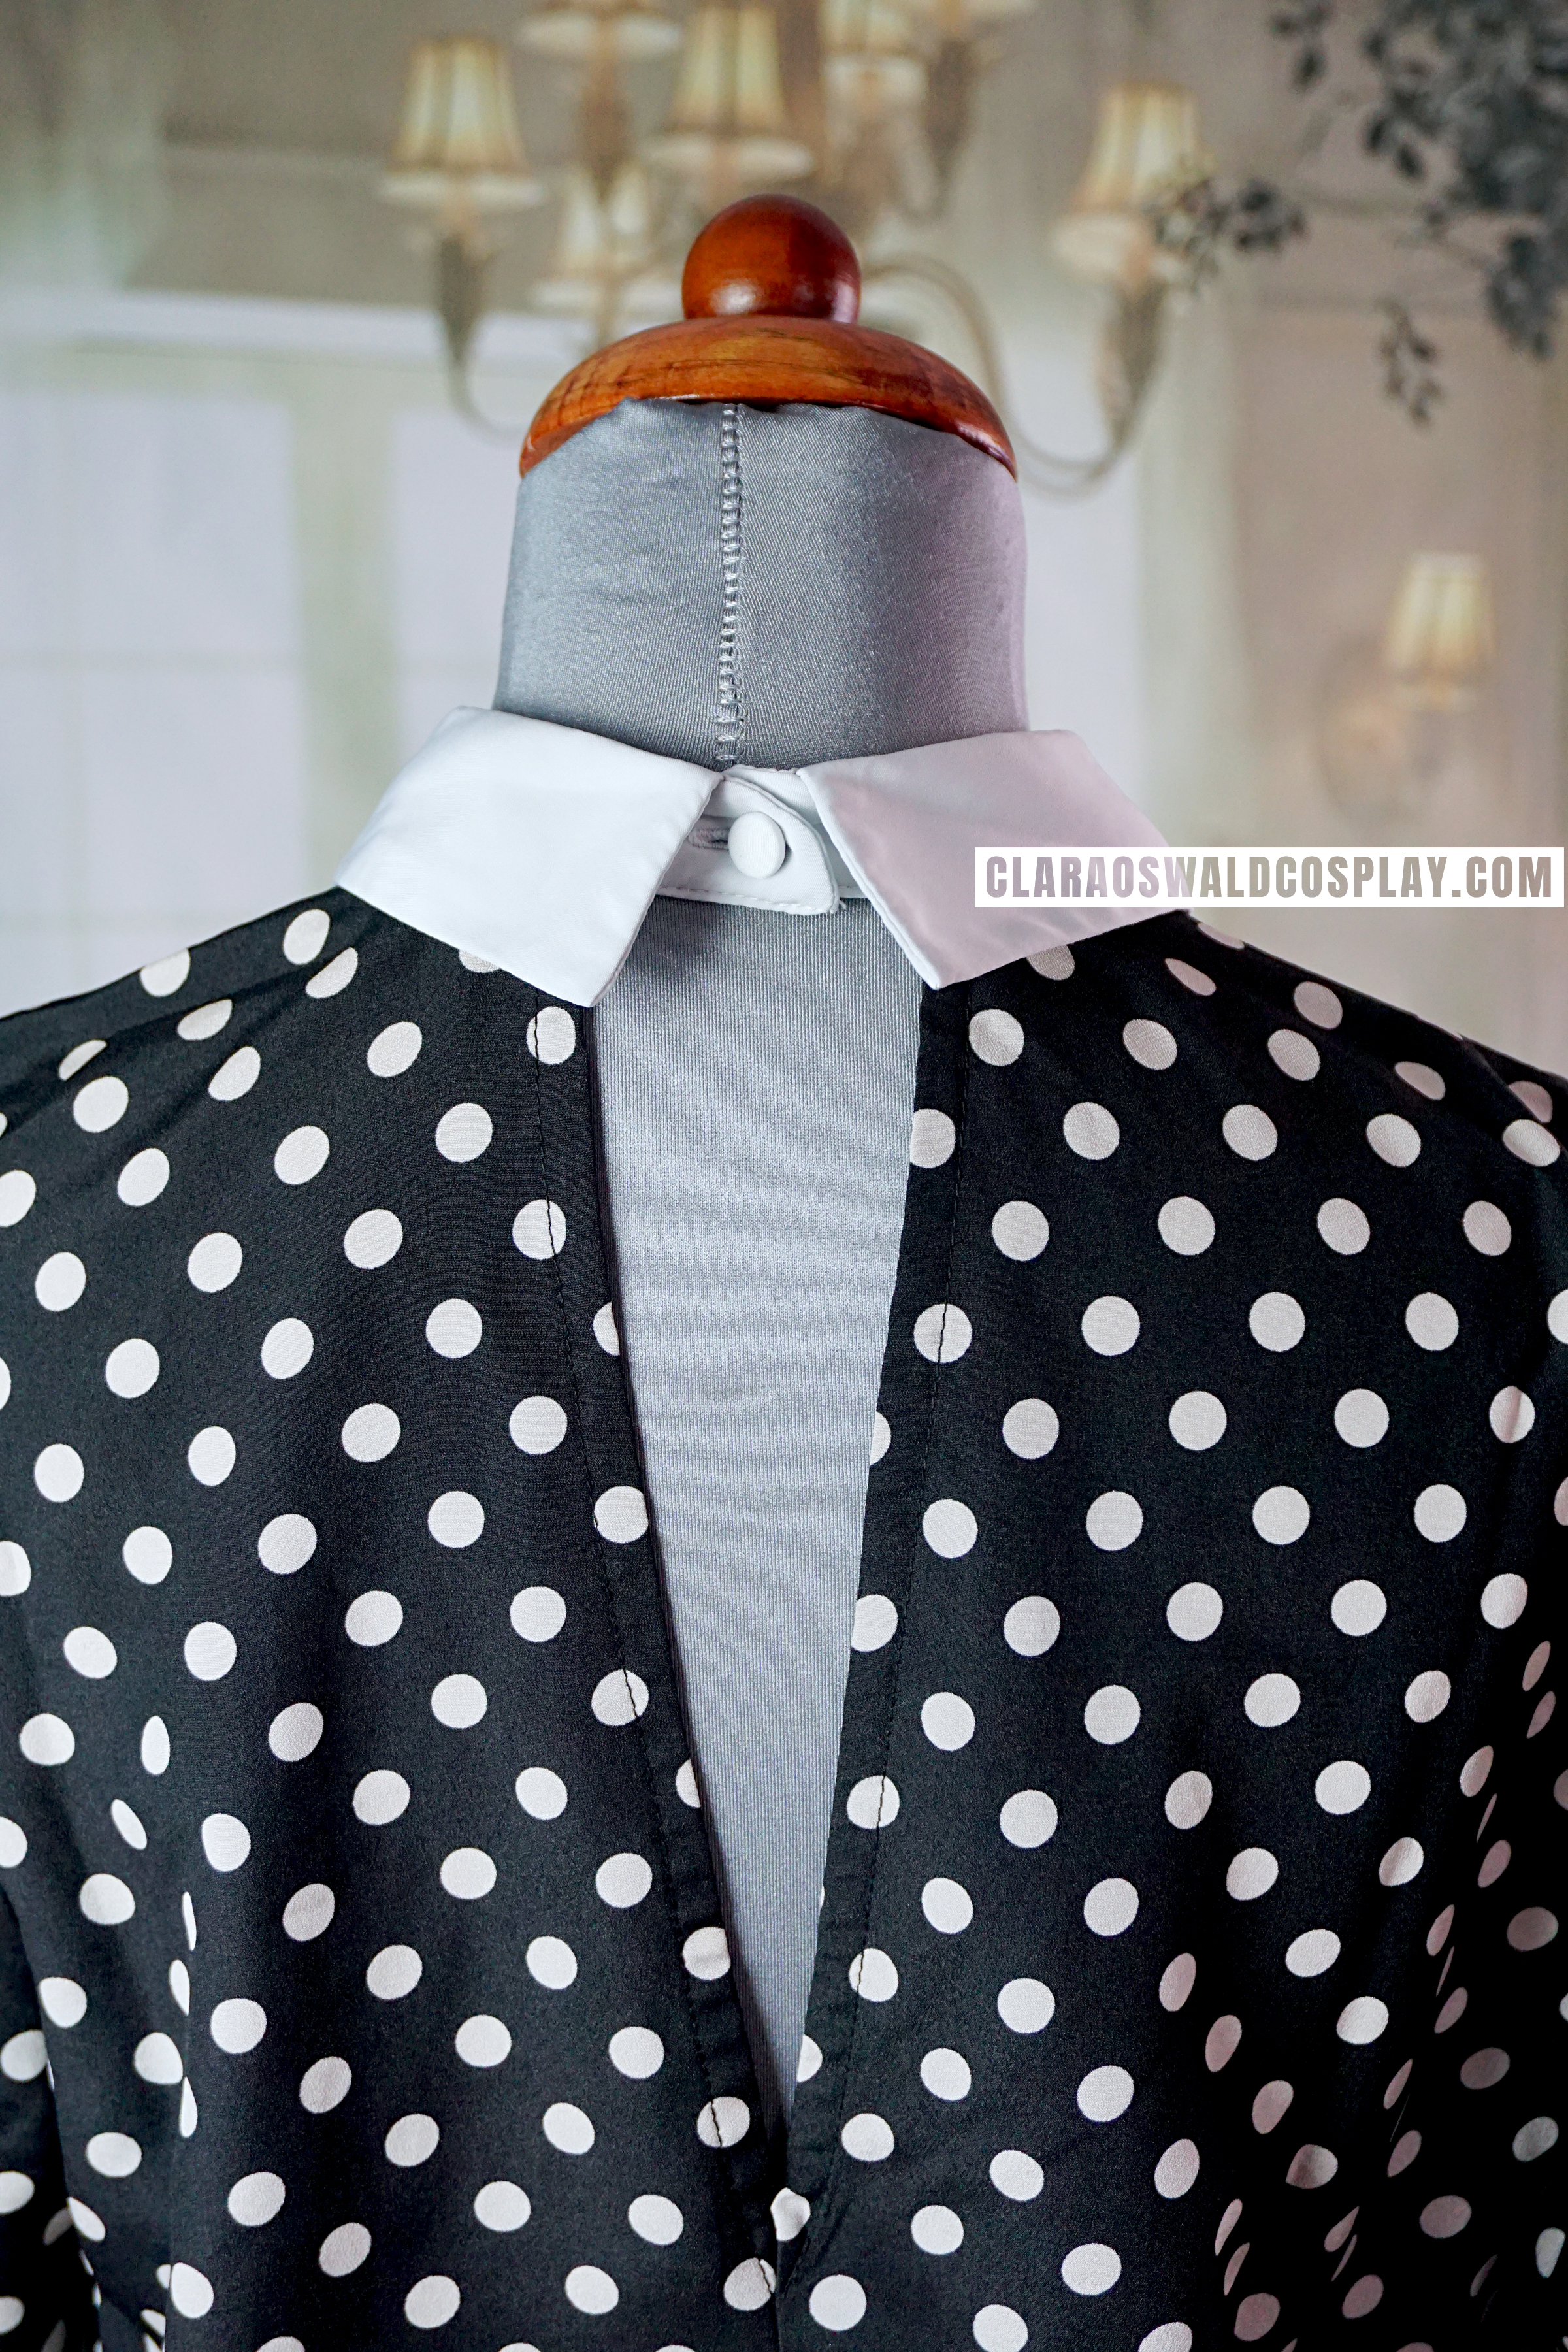 The River Island Polka Dot Blouse closes with a simple button in the back.